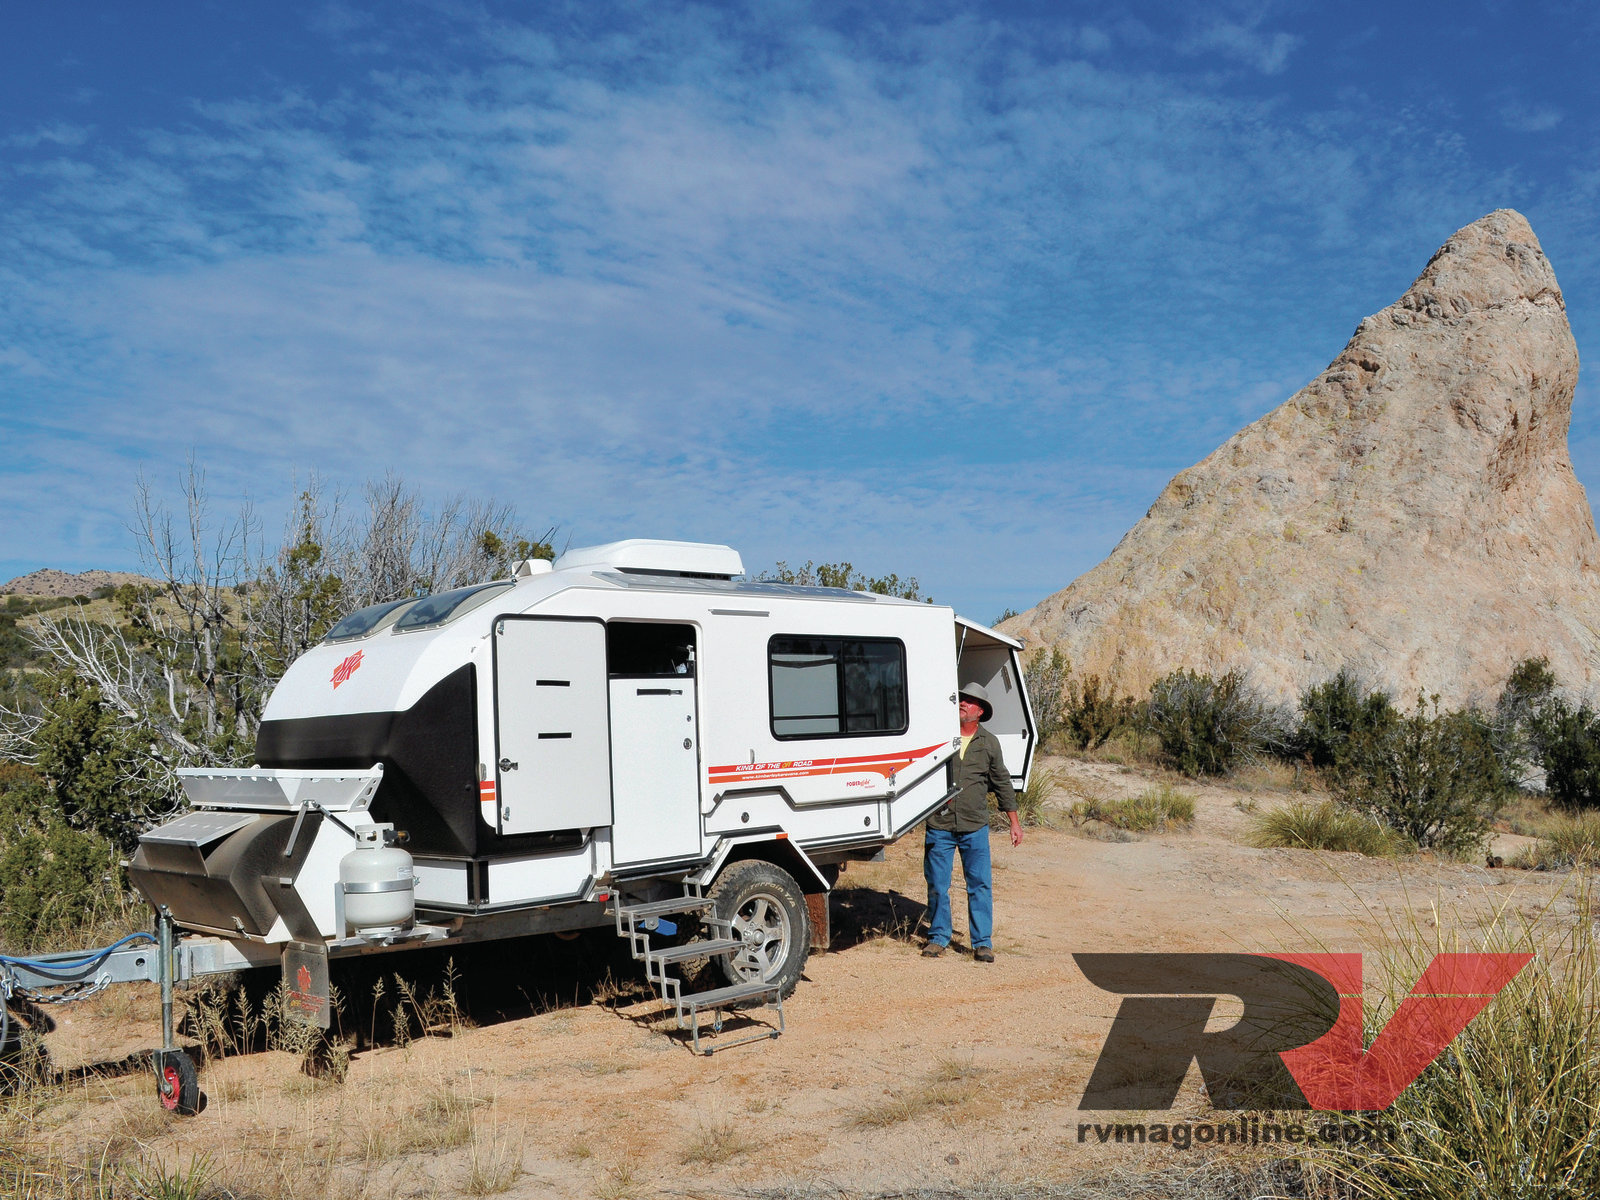 Boondock King - Kimberly Karavan - Travel Trailer - RV ...